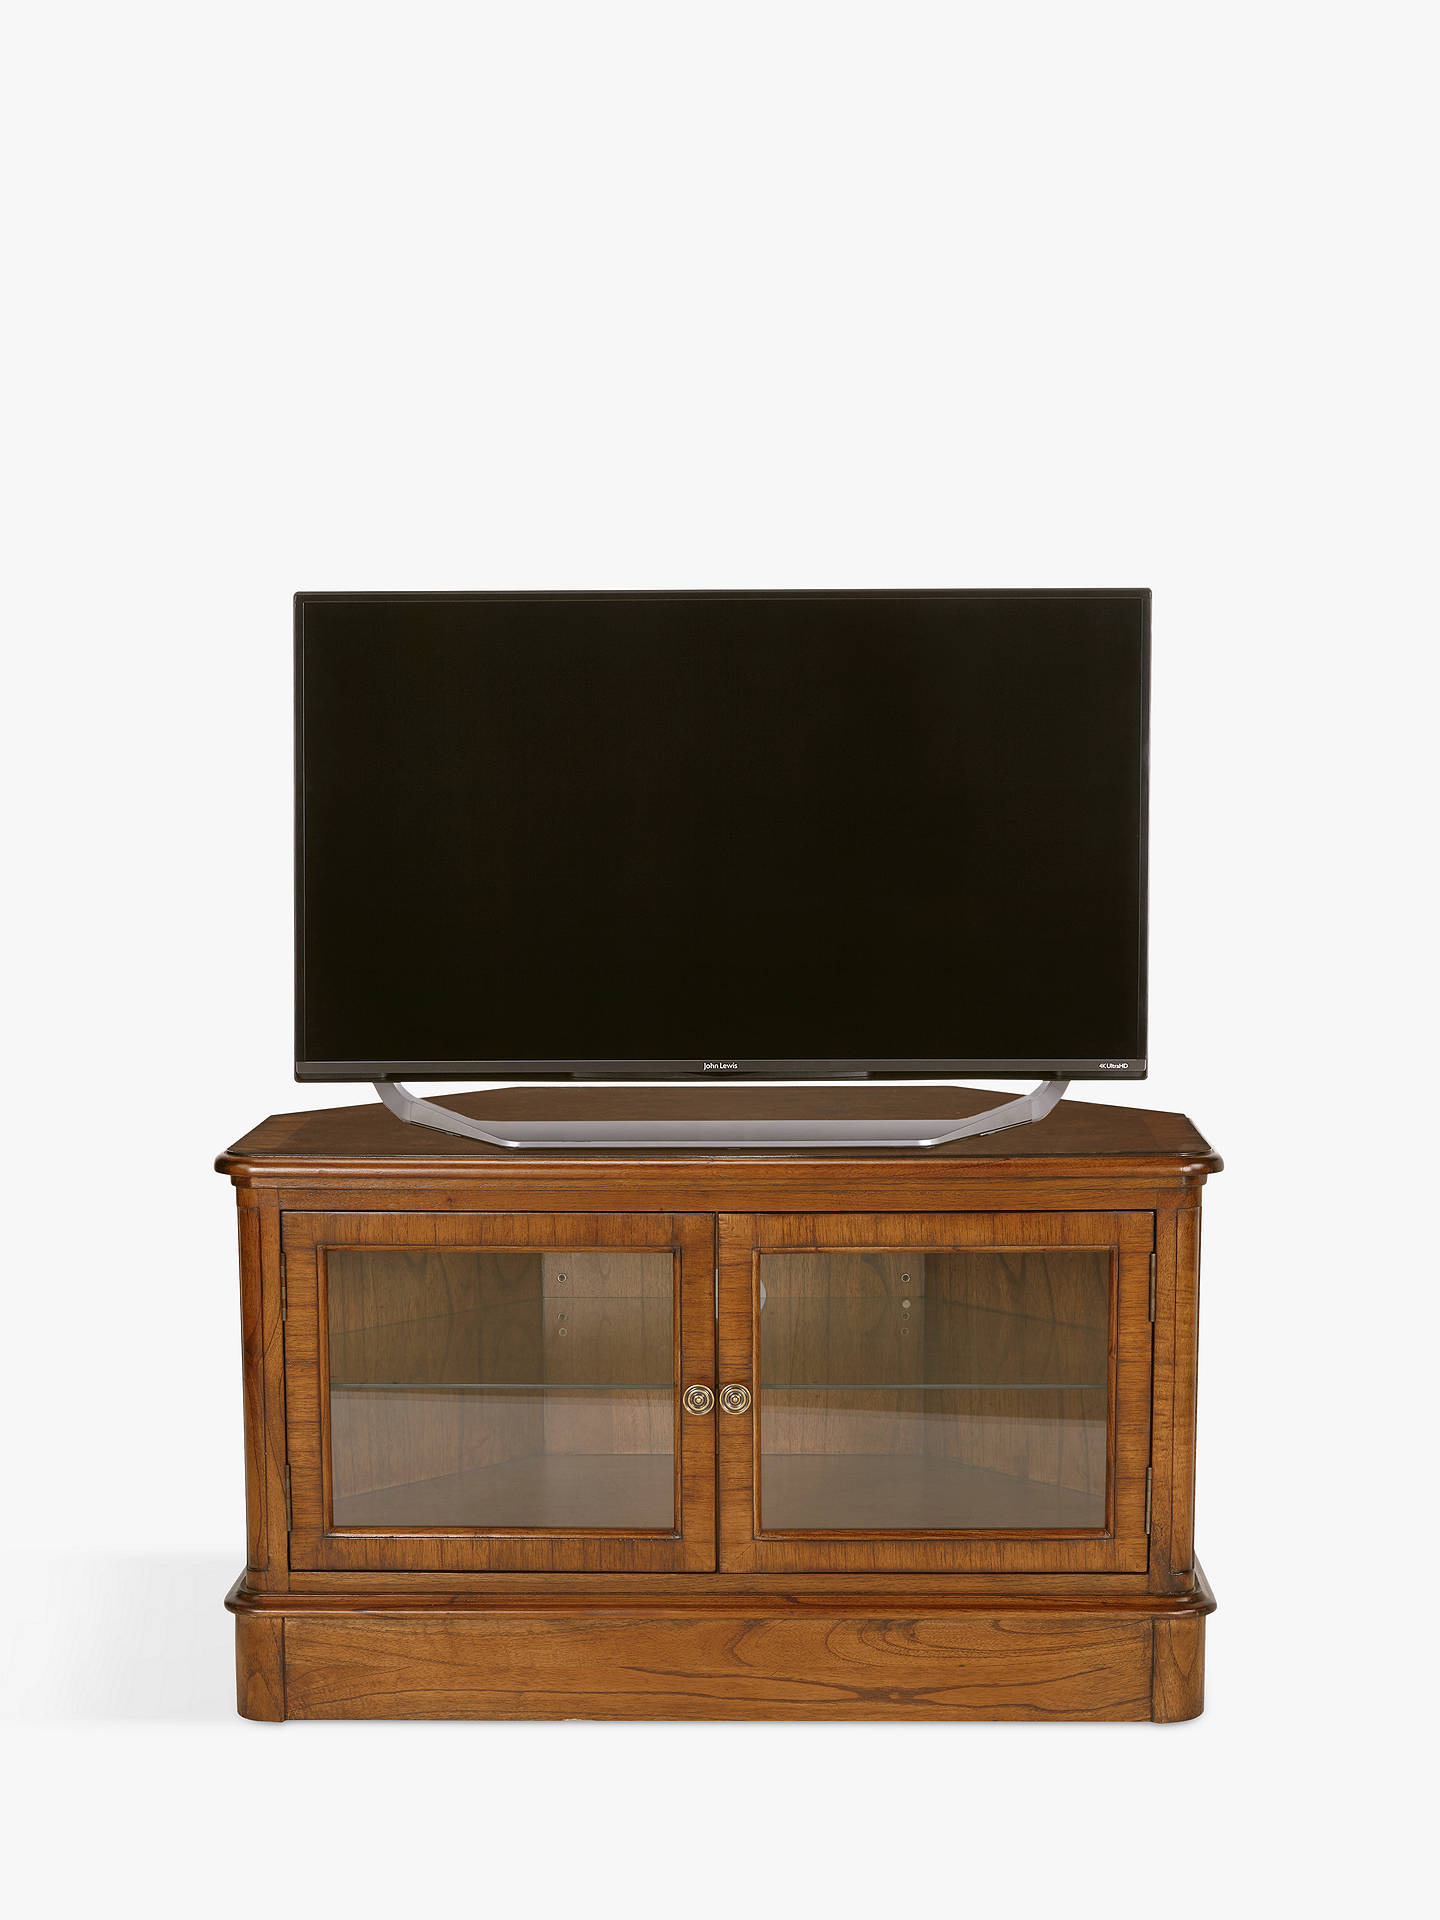 Tv Cabinets with Glass Doors Unique John Lewis & Partners Hemingway Corner Tv Stand for Tvs Up to 43